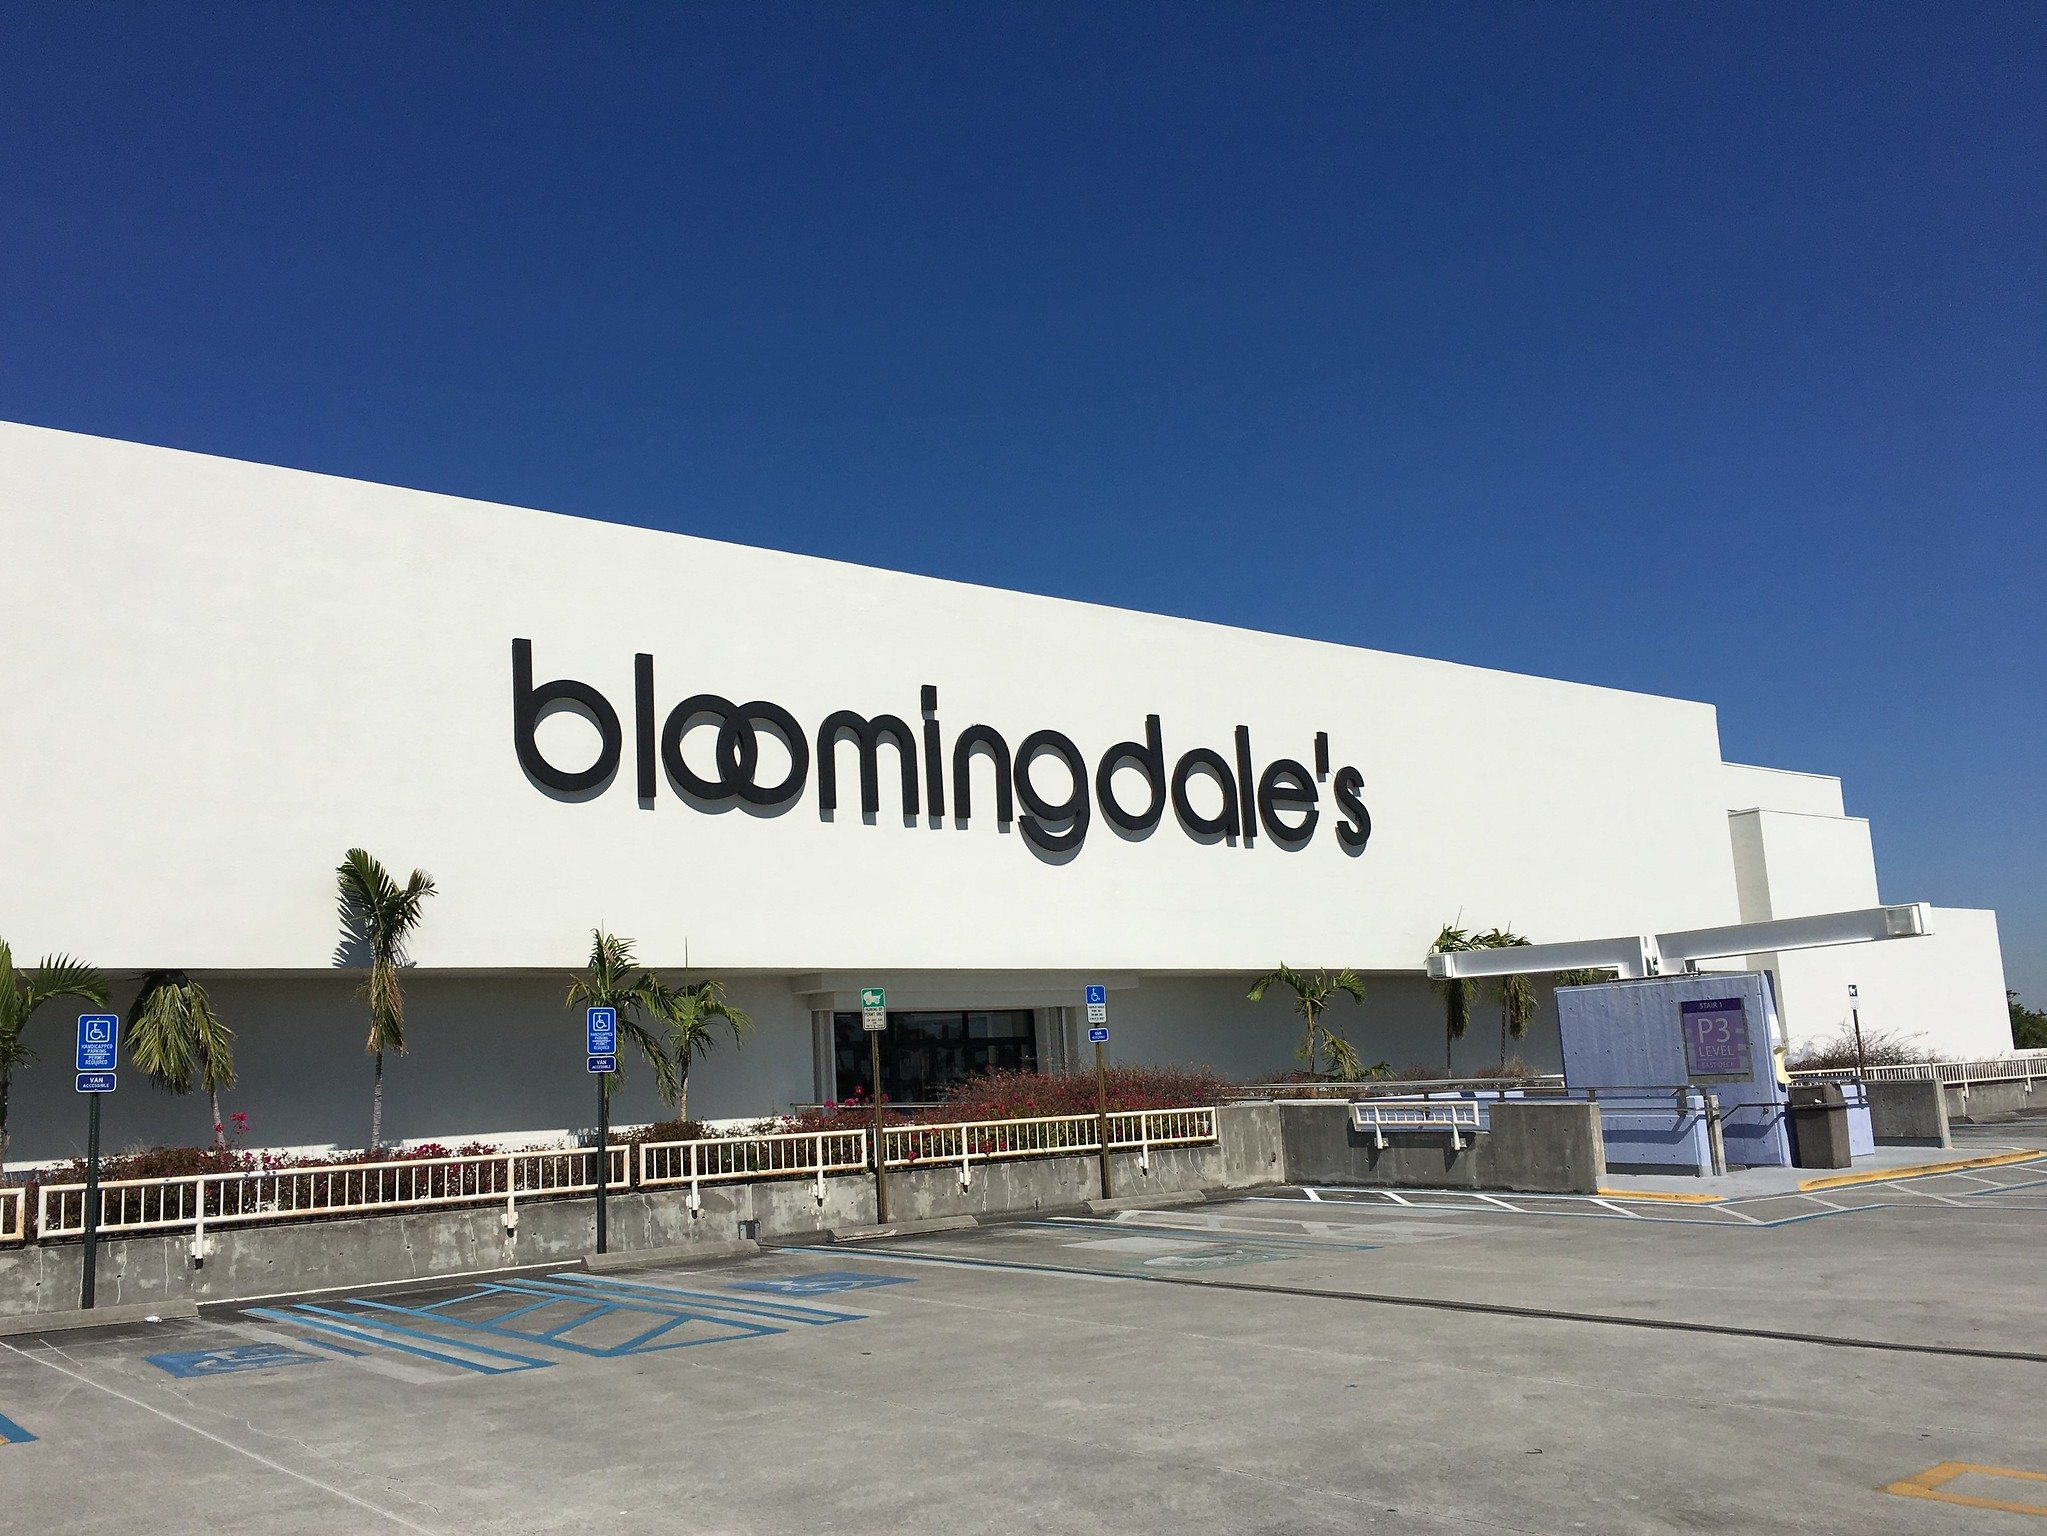 Bloomingdale's Promo Code for Existing Users - October 2021